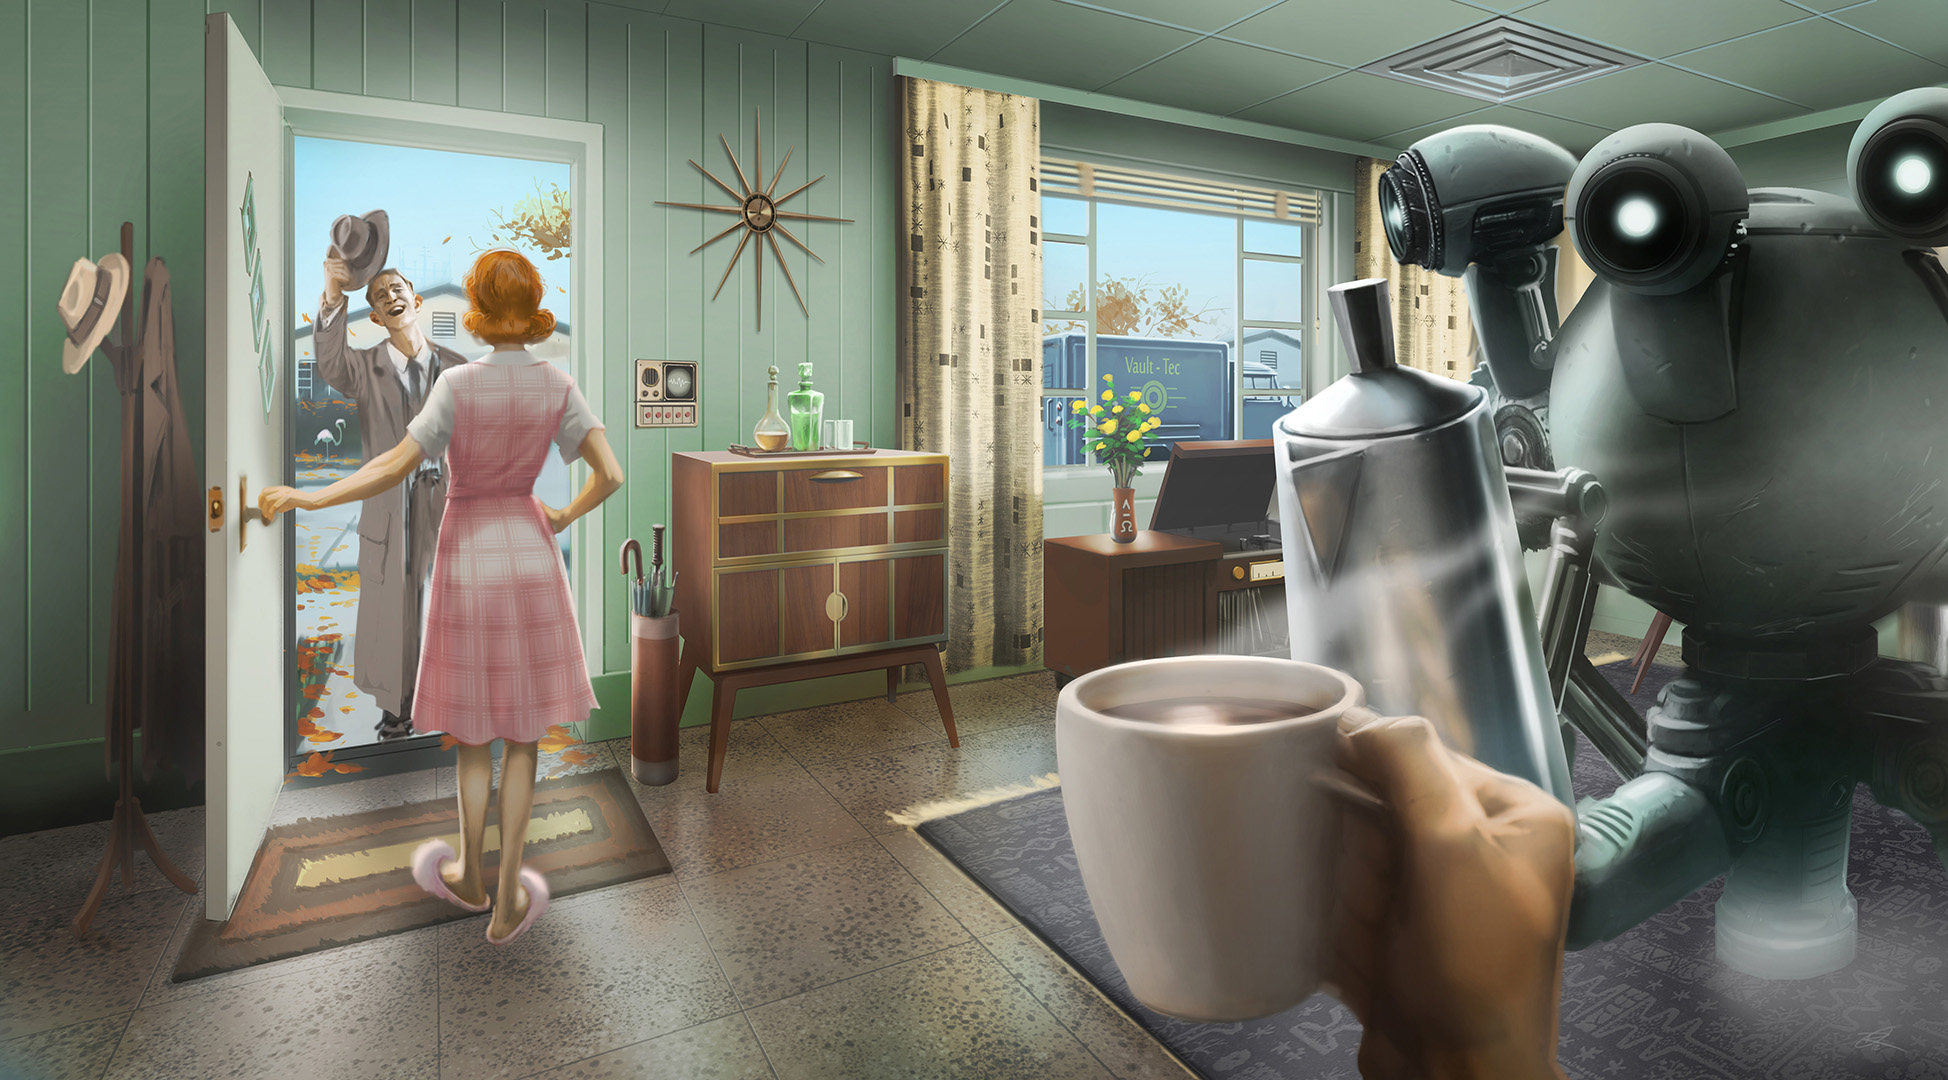 Fallout 4 could be a bigger hit than Skyrim